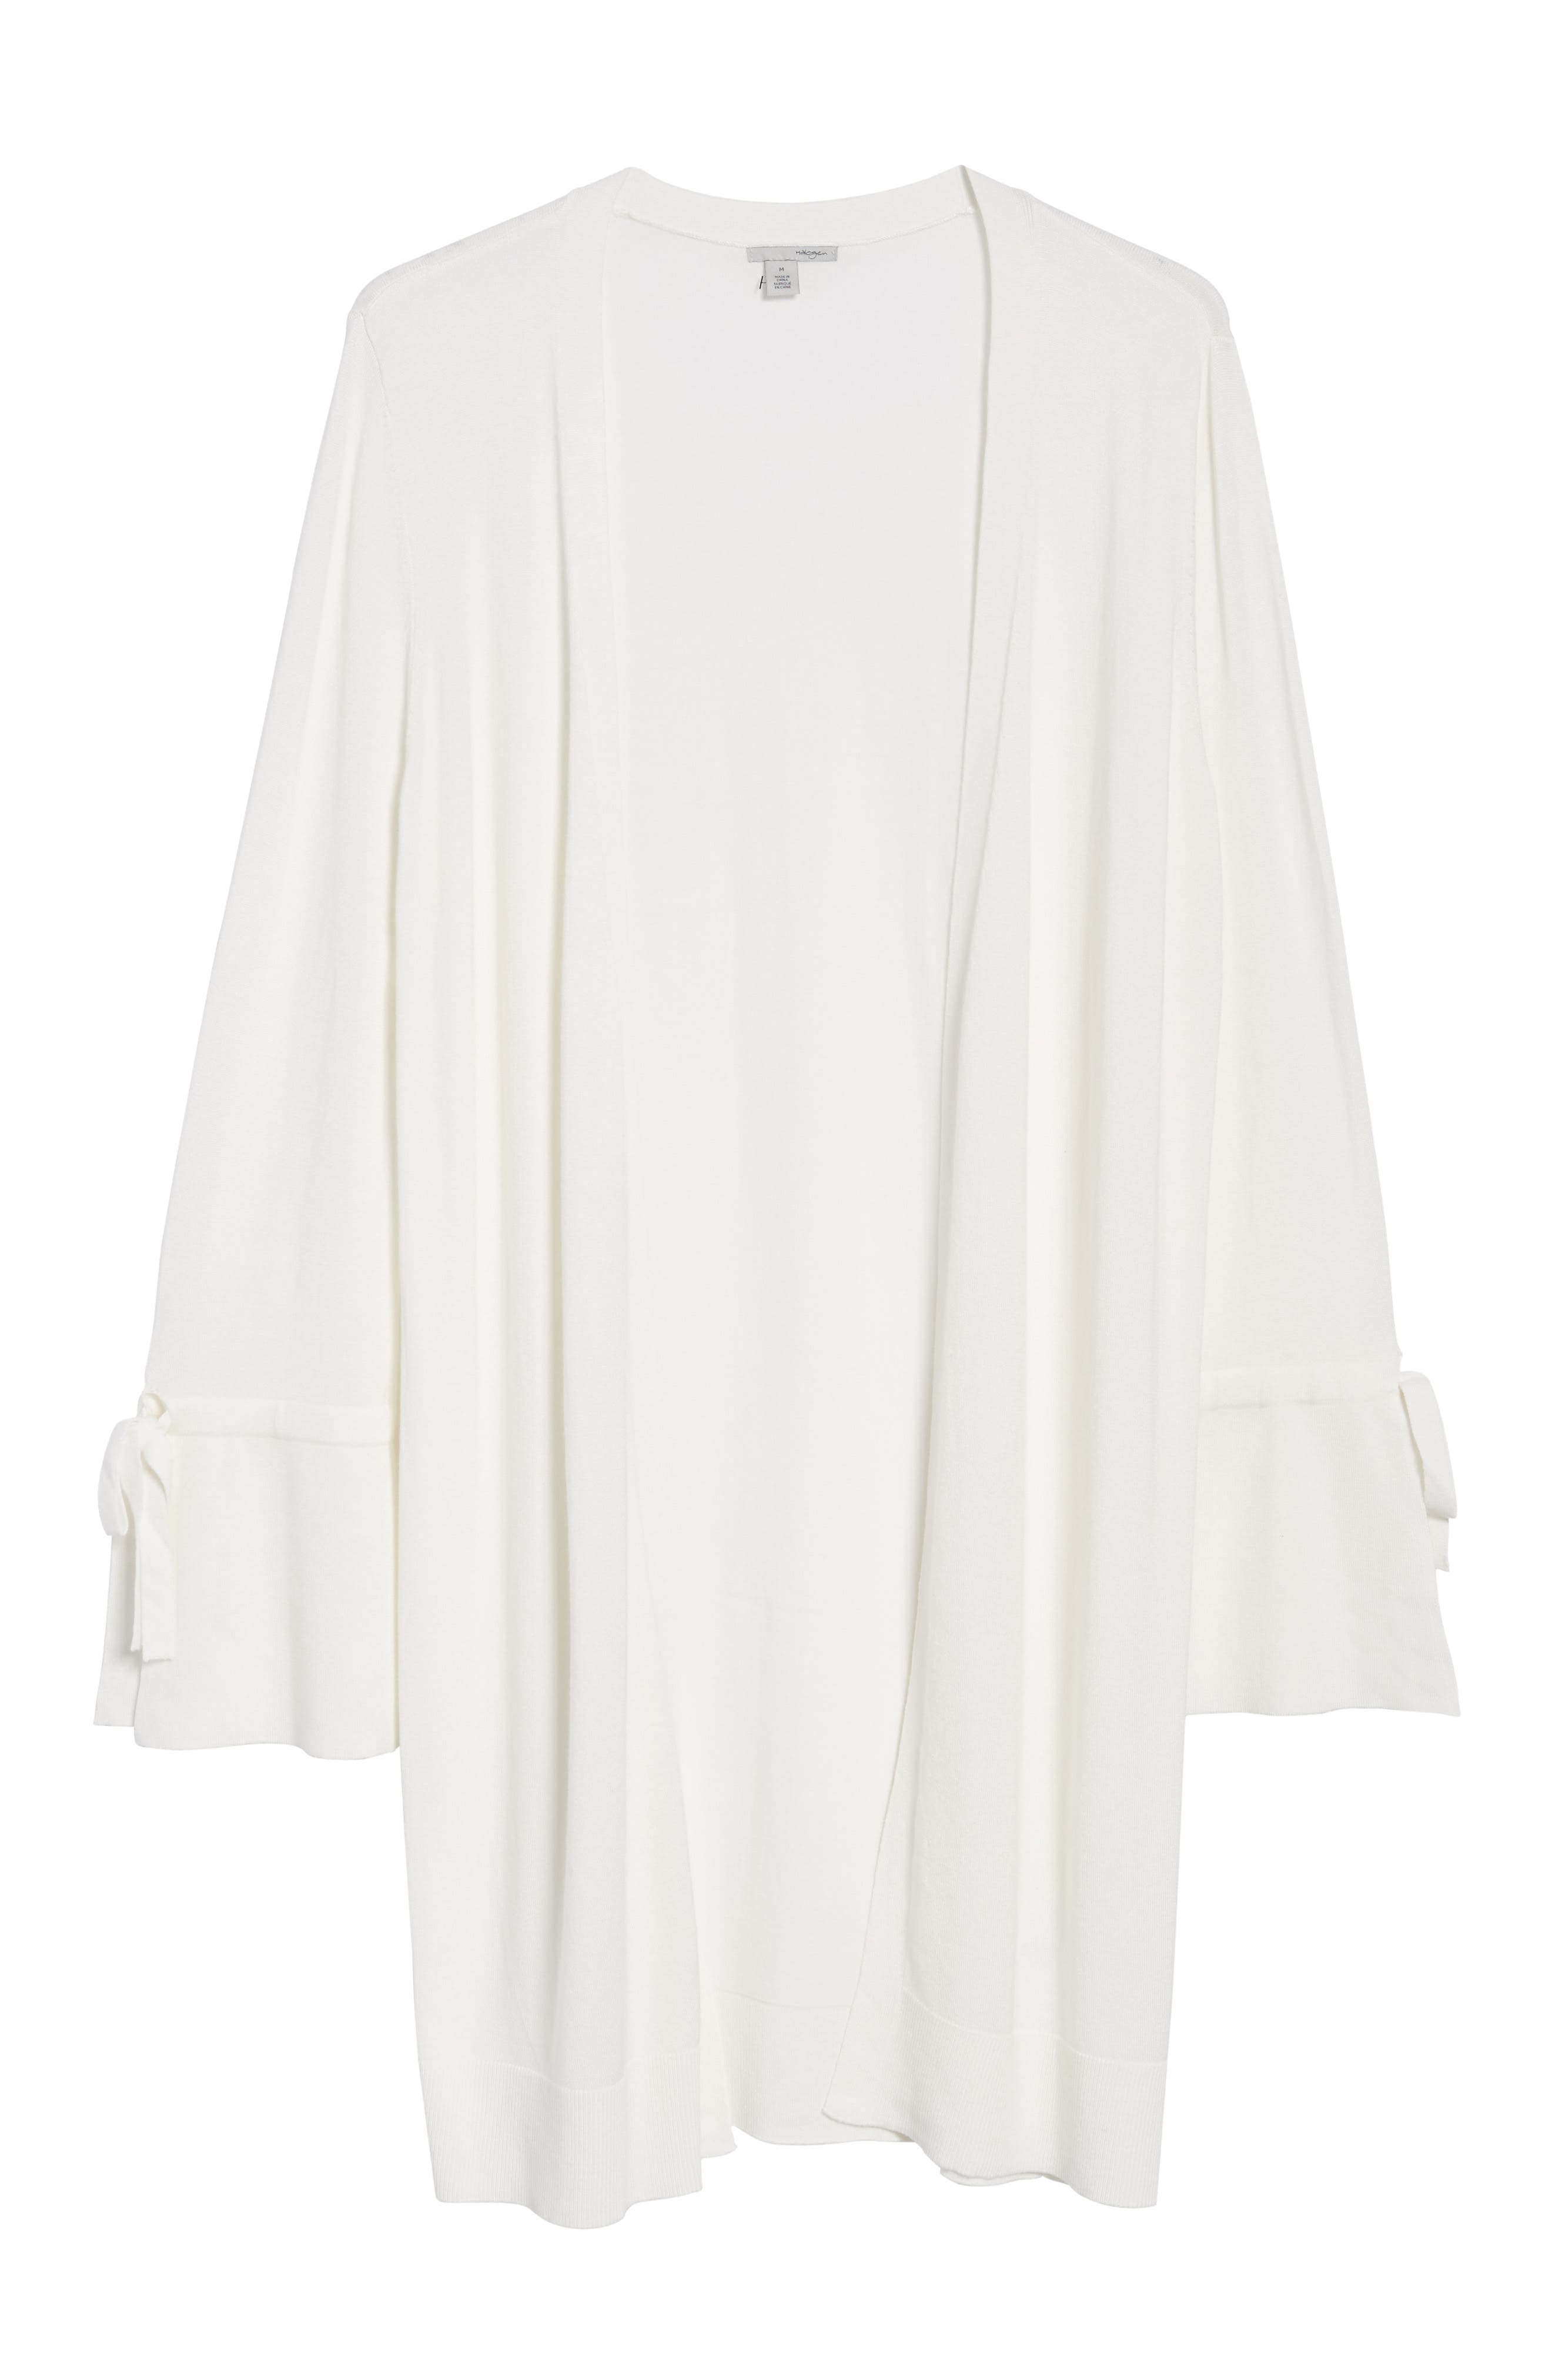 Women's Off-White Cardigan Sweaters   Nordstrom